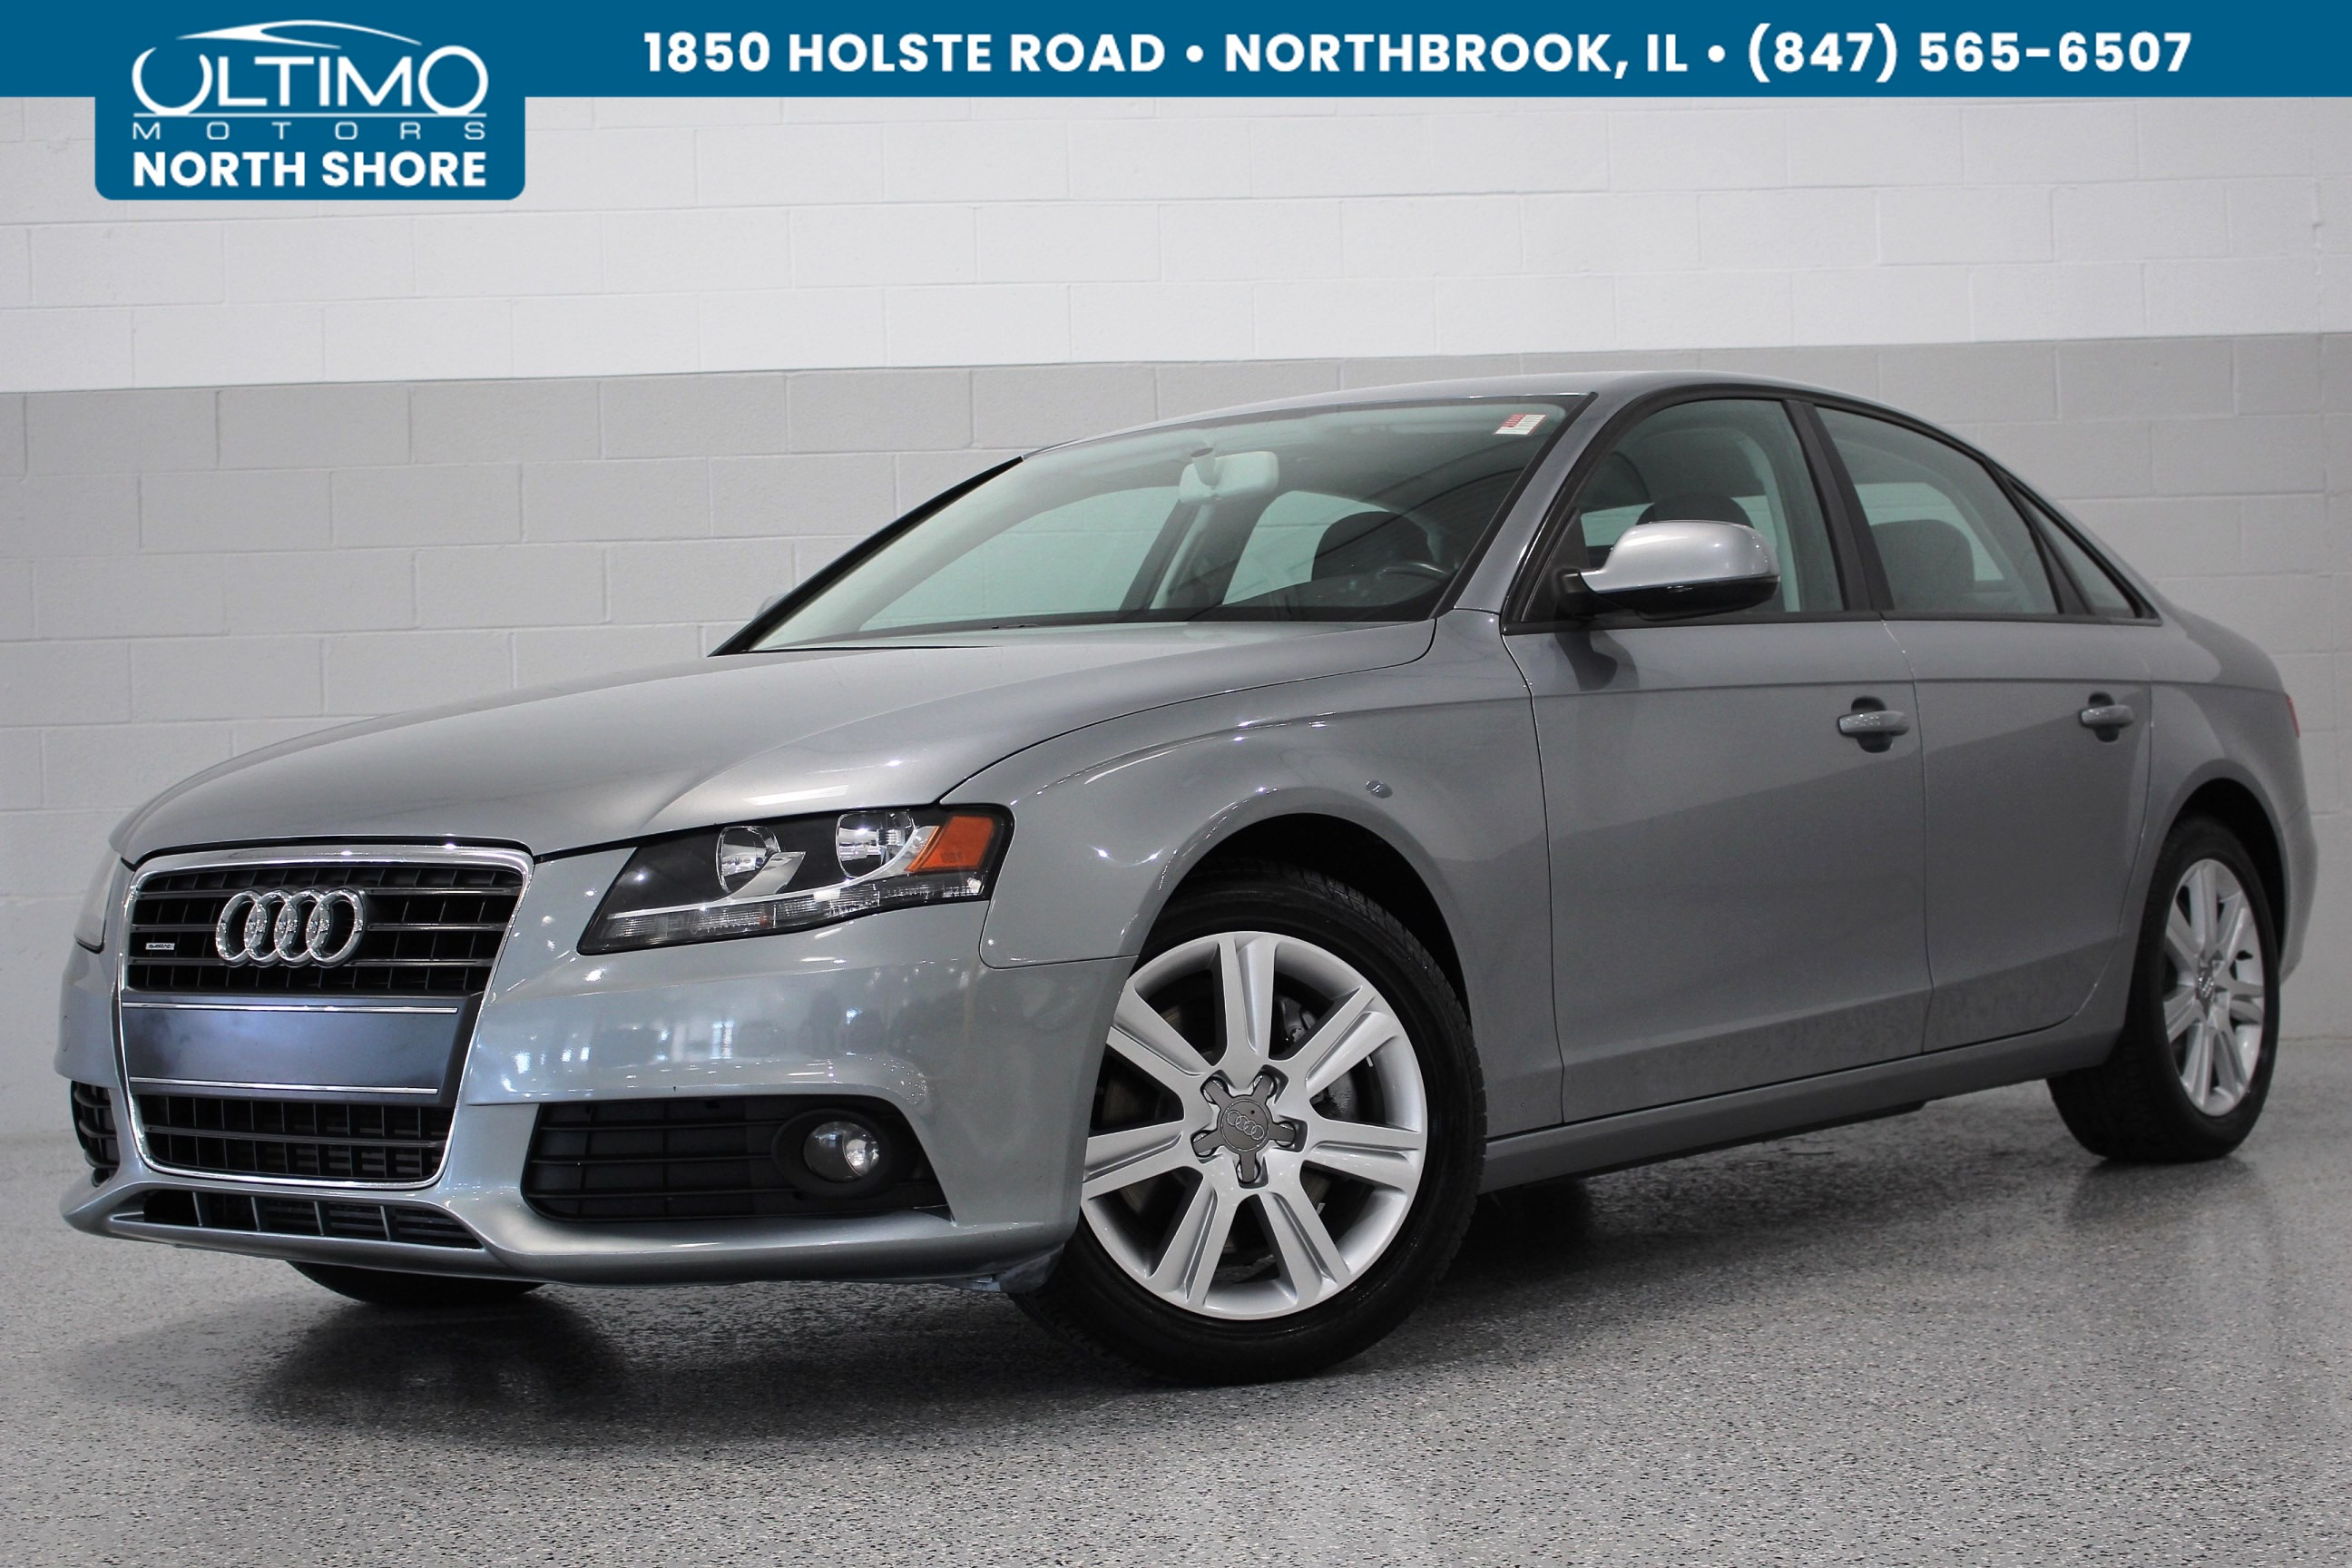 Pre-Owned 2011 Audi A4. 2.0T Premium, Bluetooth, Heated Seats, Quattro